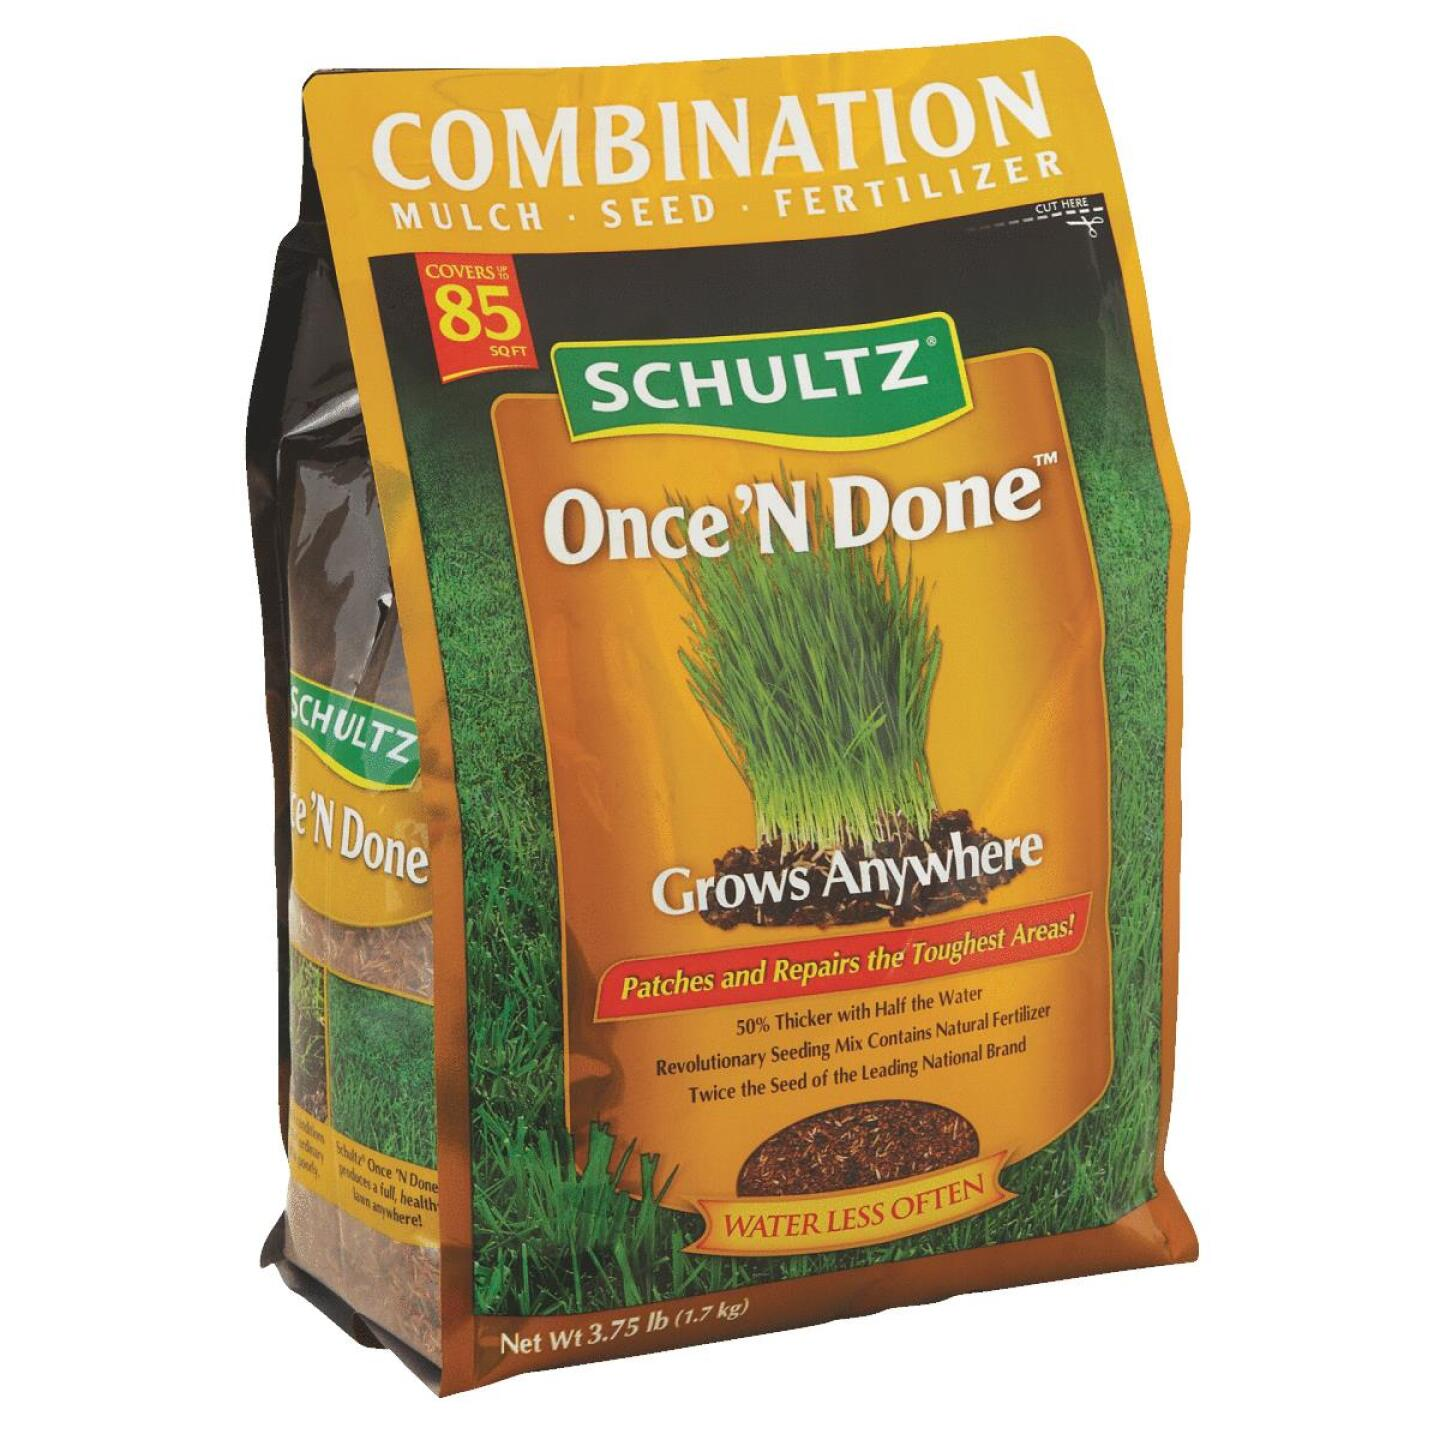 Schultz Once 'N Done 3.75 Lb. 85 Sq. Ft. Coverage Sun & Shade Grass Patch & Repair Image 1